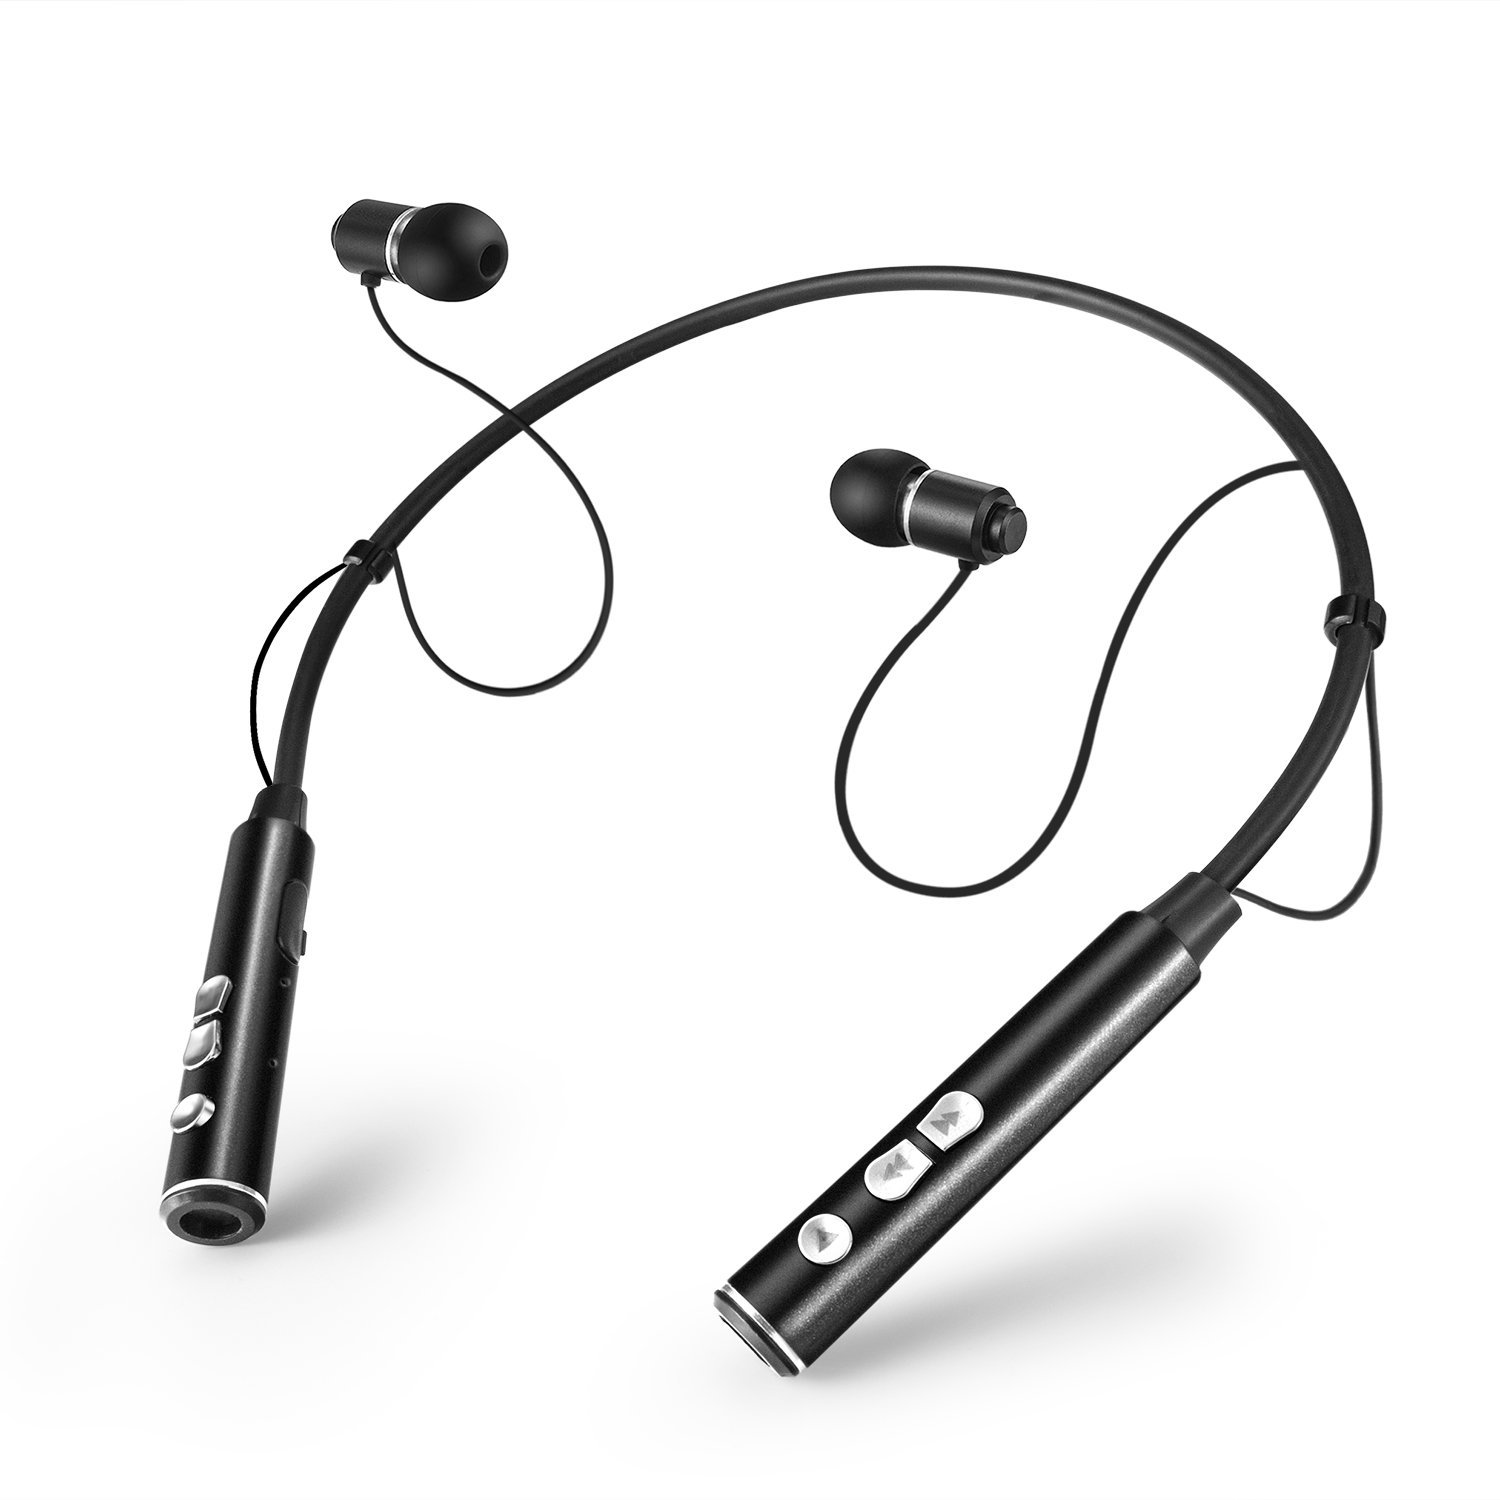 Amazon: Bluetooth Wireless Headphones Only $9.00 + Free Shipping! (Was $49.99